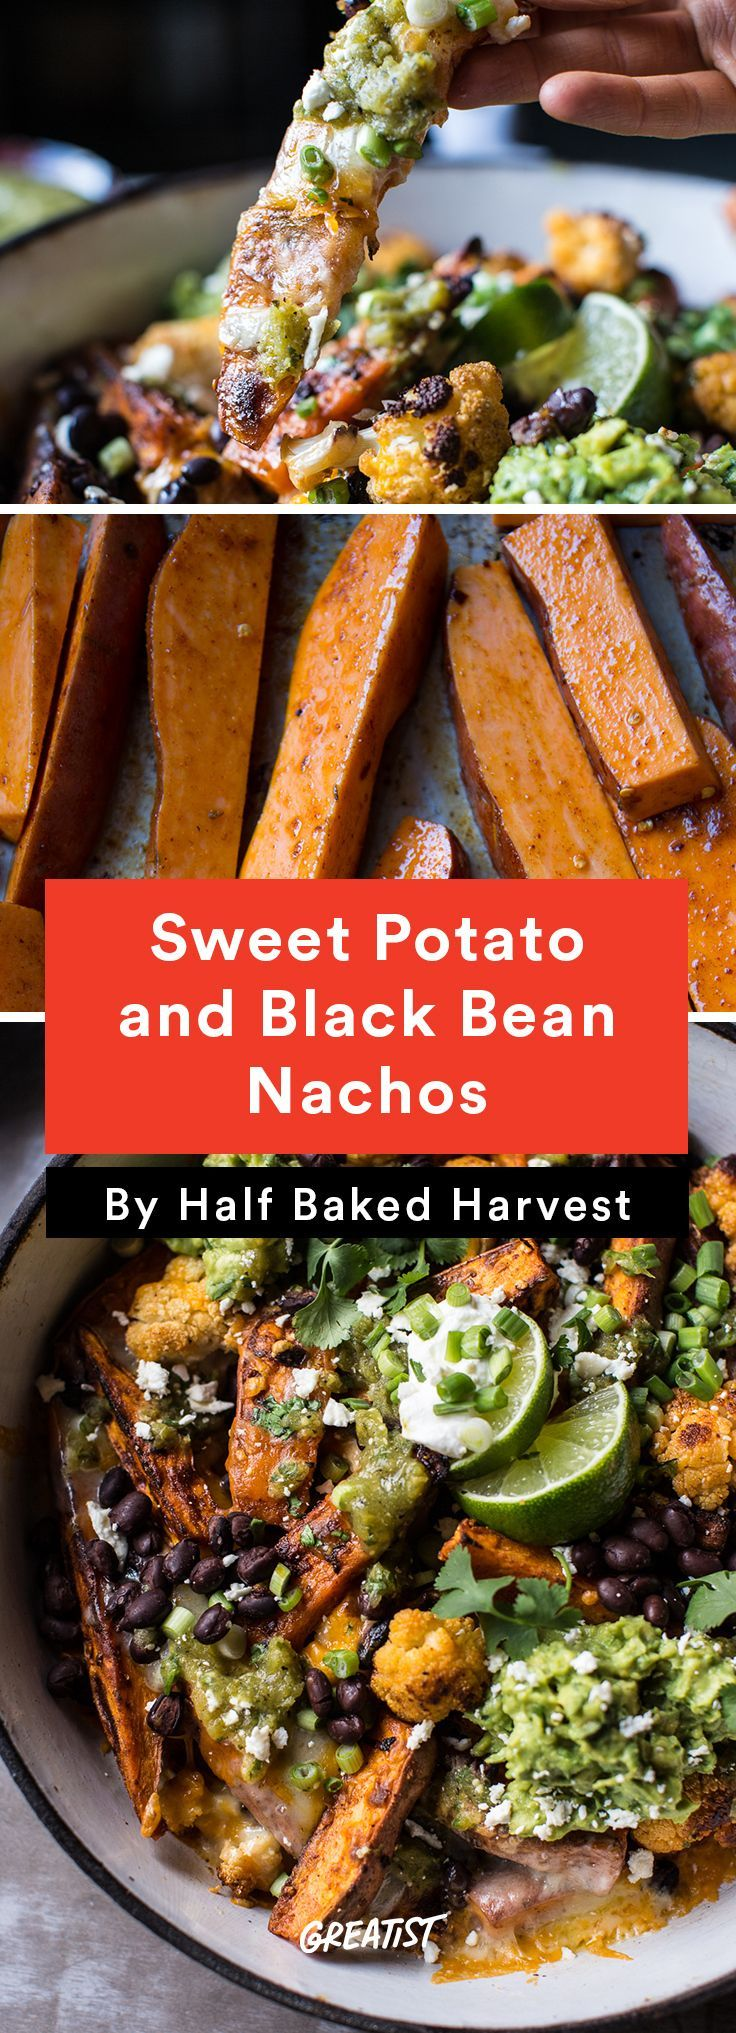 3. Sweet Potato and Black Bean Nachos With Green Chile Salsa #comfortfood #recipes http://greatist.com/eat/comfort-food-recipes-that-are-healthy